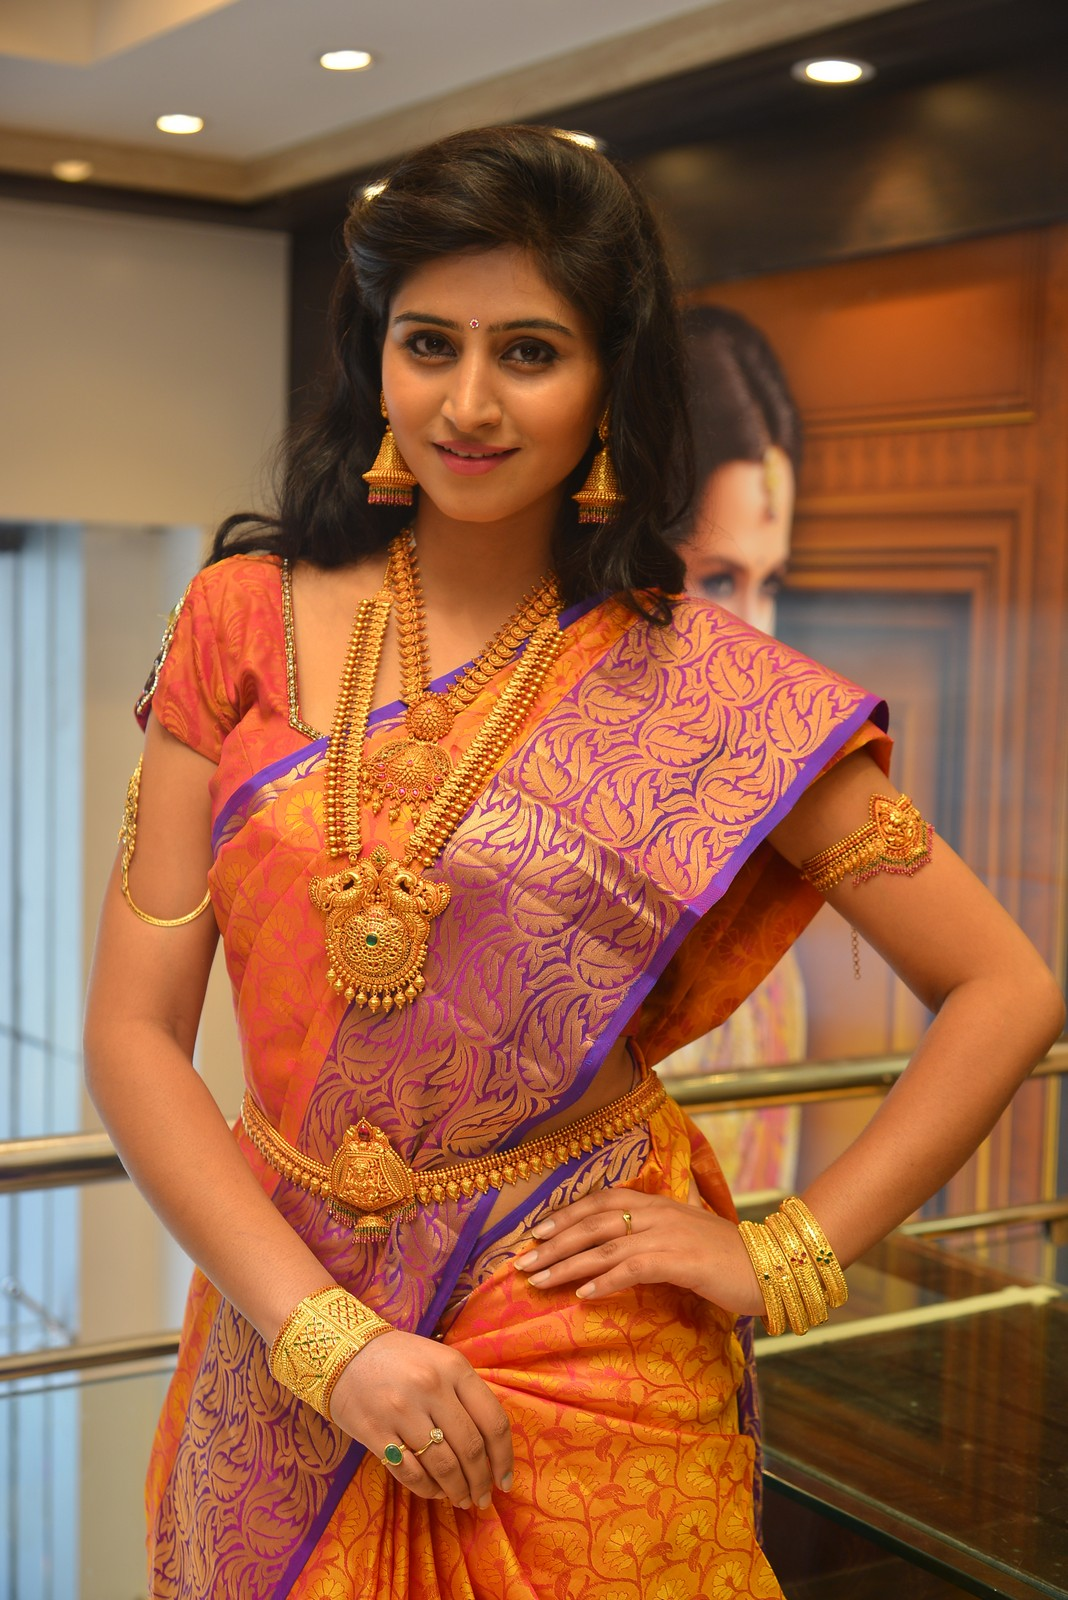 Baby shamili wedding photos 2017 Ranking of the Best, Top Fashion Schools in the US